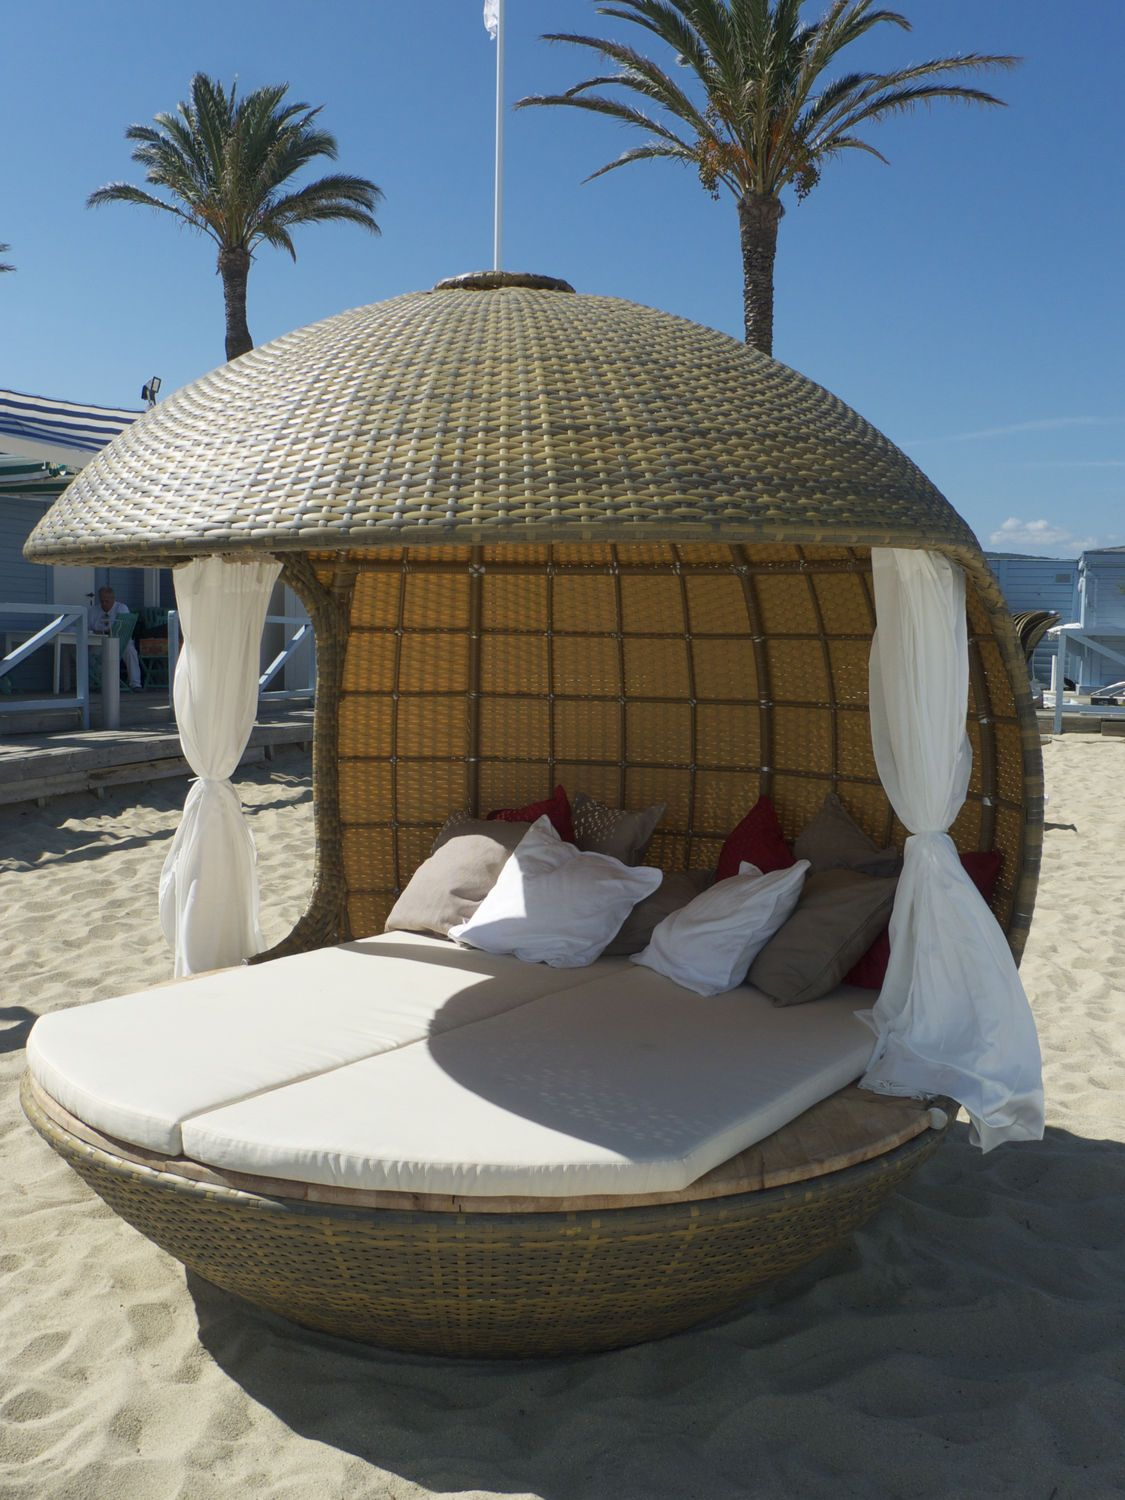 Mind Blowing Outdoor Beds With Canopy Design Exterior Ideas  Extraordinary Round Rattan Woven Sun Cover For Cream Sheet Bed In Pictures Of Outdoor ... & Canopies And Awnings High Resolution Image Door Design Outdoor Bed ...